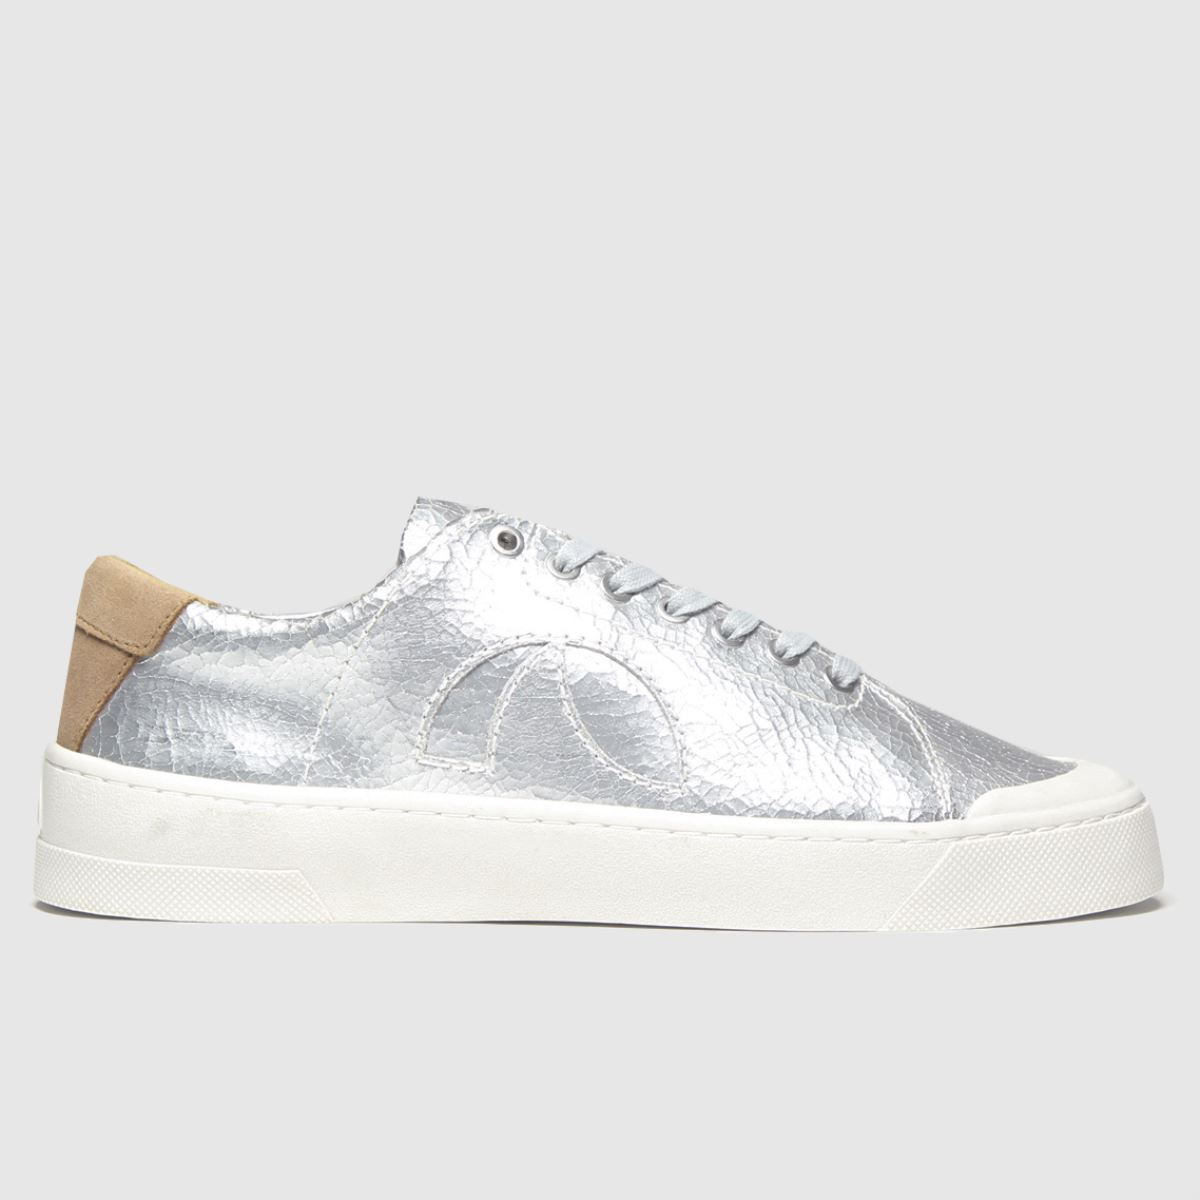 Roscomar Silver Blvd Leather Metallic Trainers